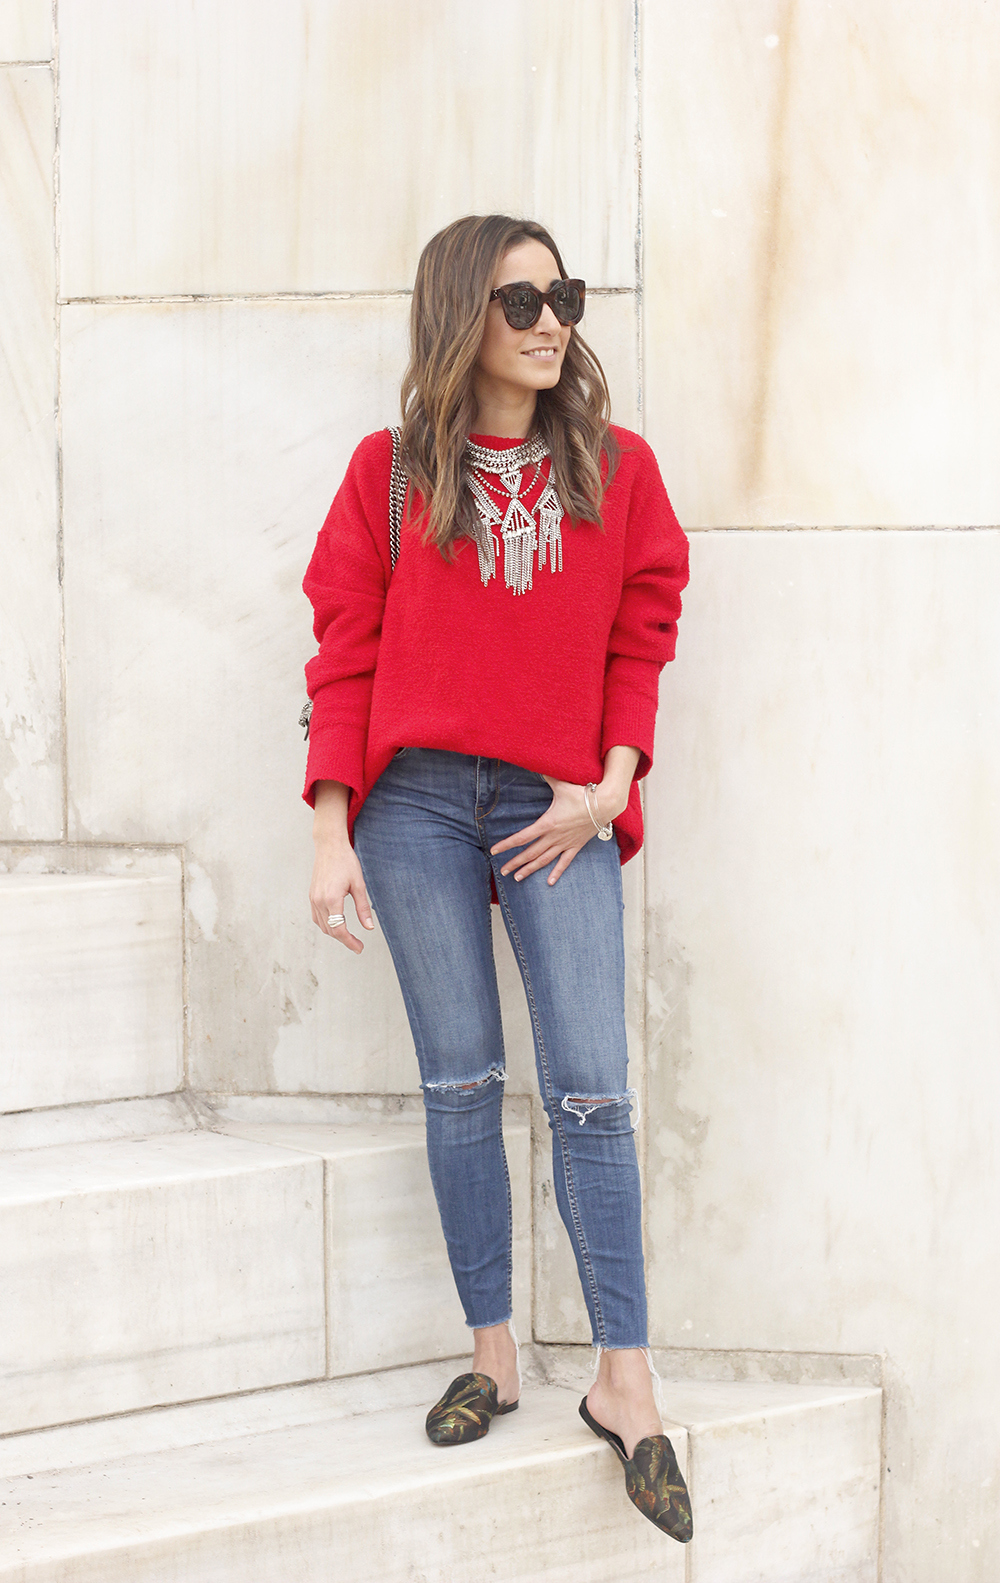 Mules Red sweater Ripped Jeans gucci bag céline sunnies fashion outfit style trend12